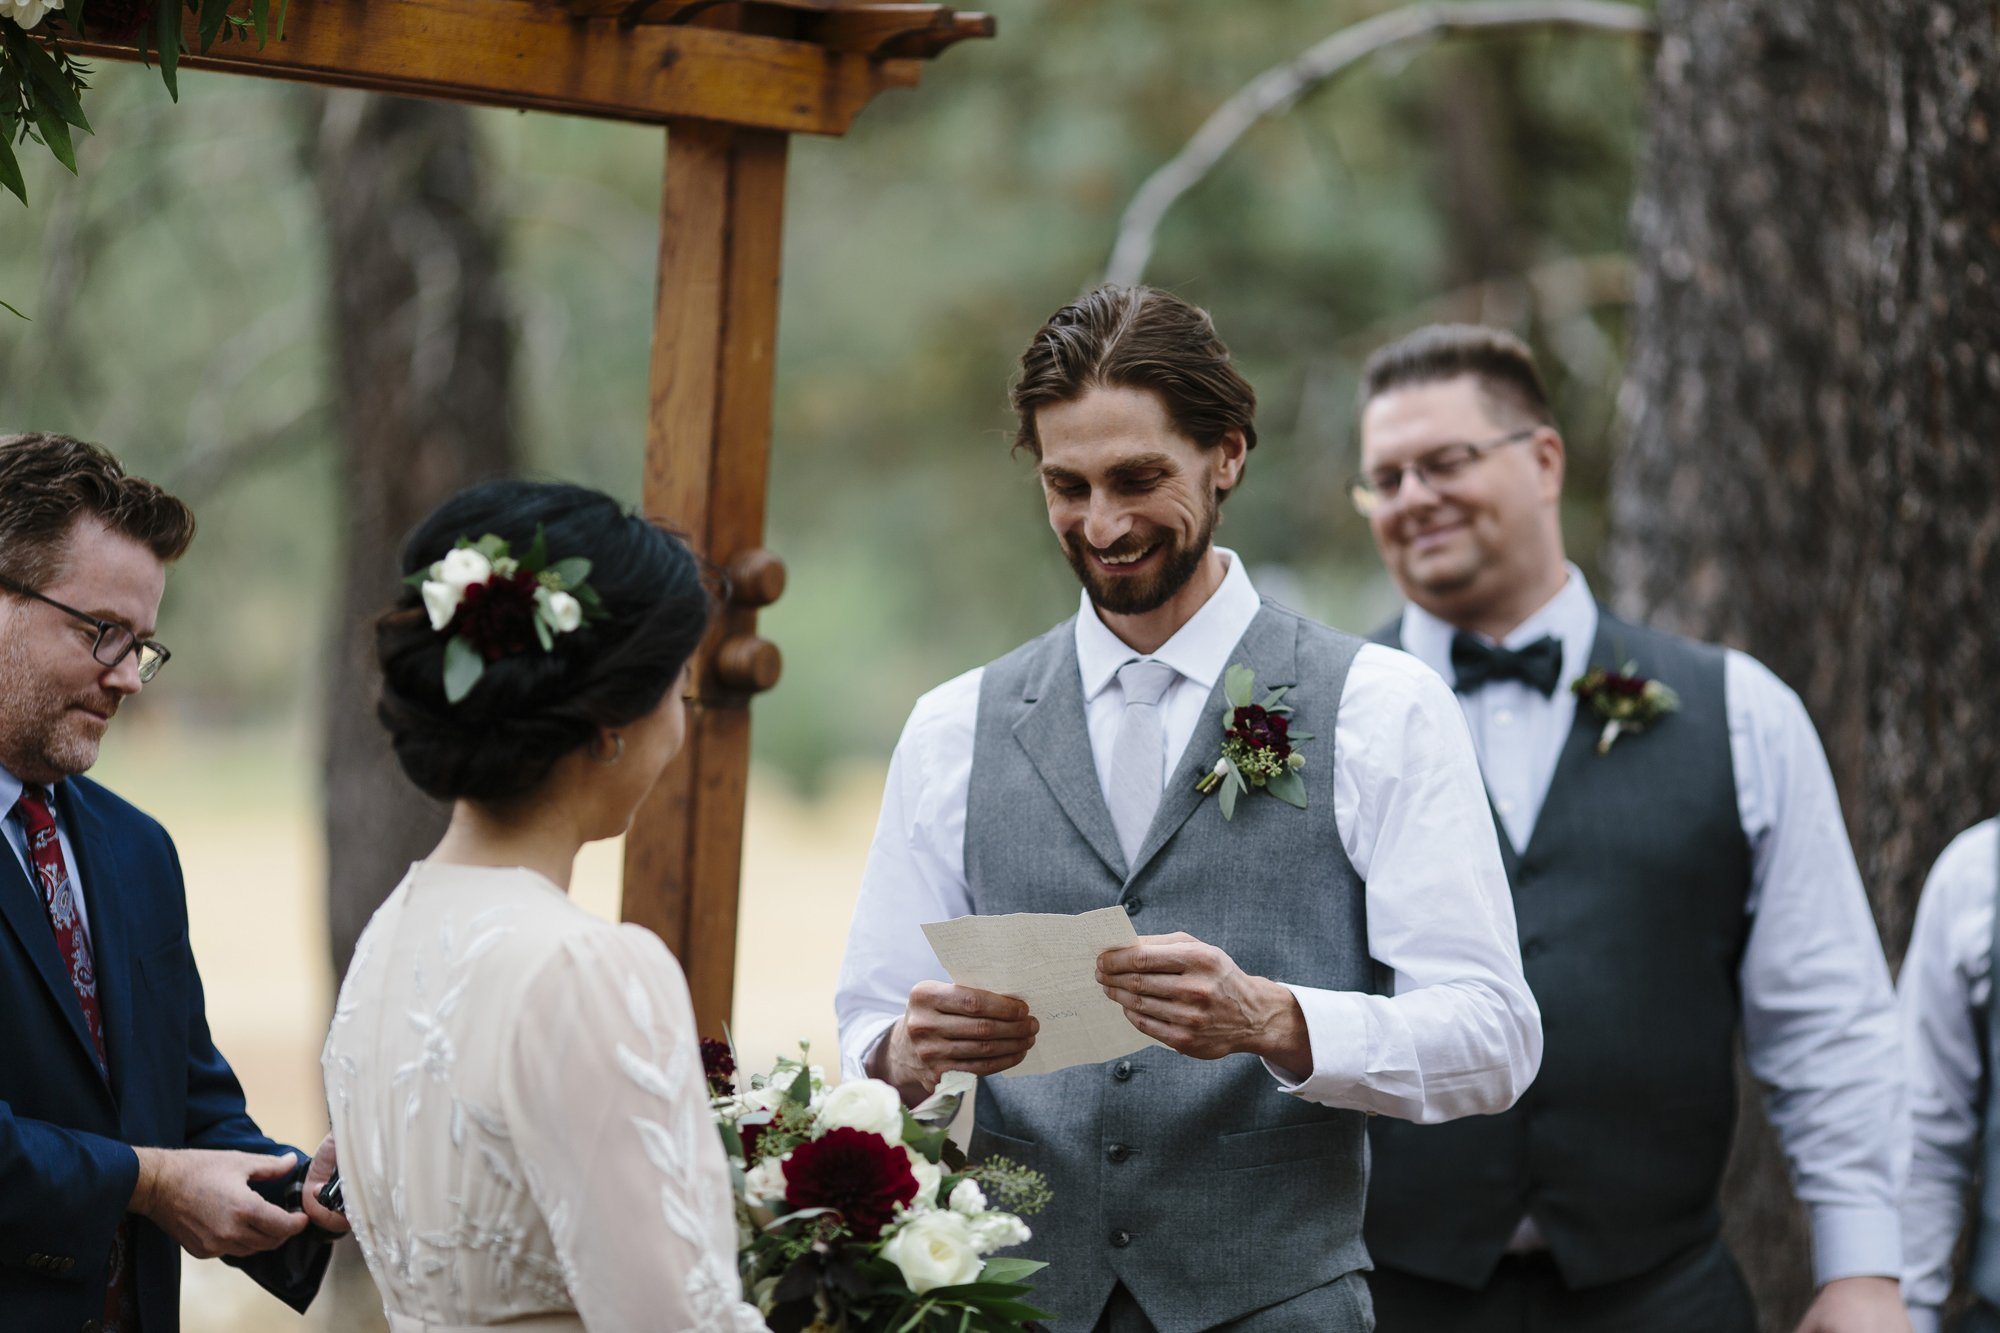 Wedding ceremony outside under the trees